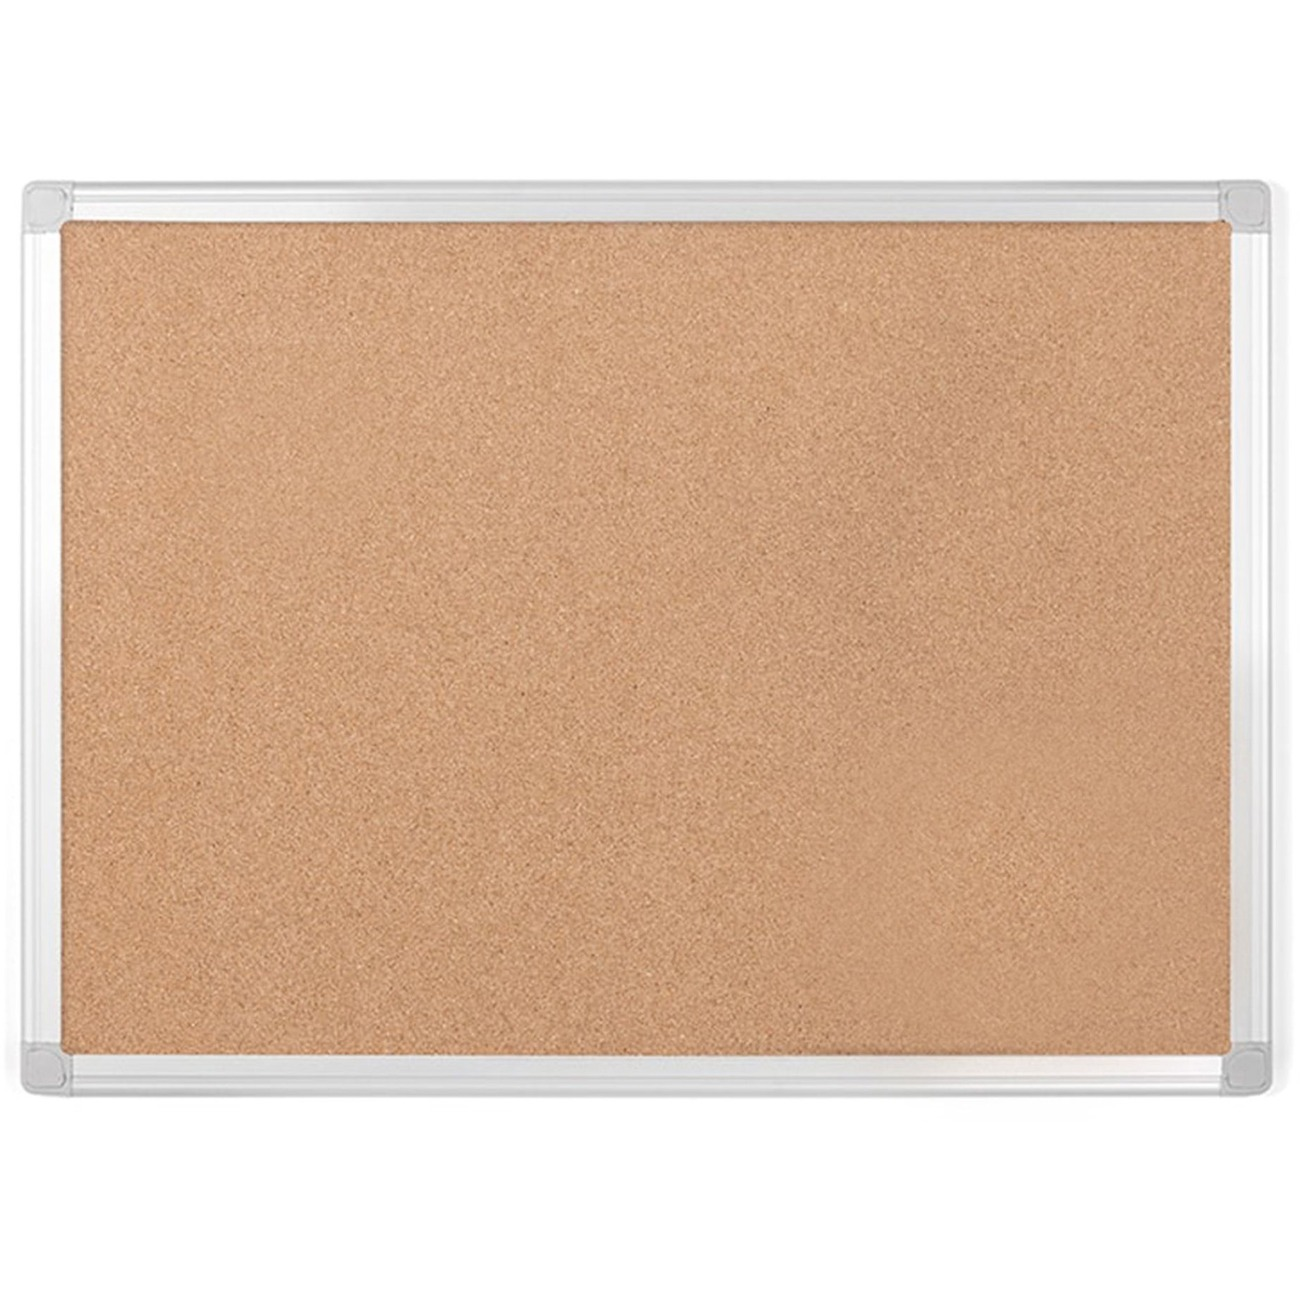 Uncategorized Cork Board No Frame west coast office supplies boards easels eco friendly bulletin board features cork made of recycled material and a sleek aluminum frame resilient surface is self hea